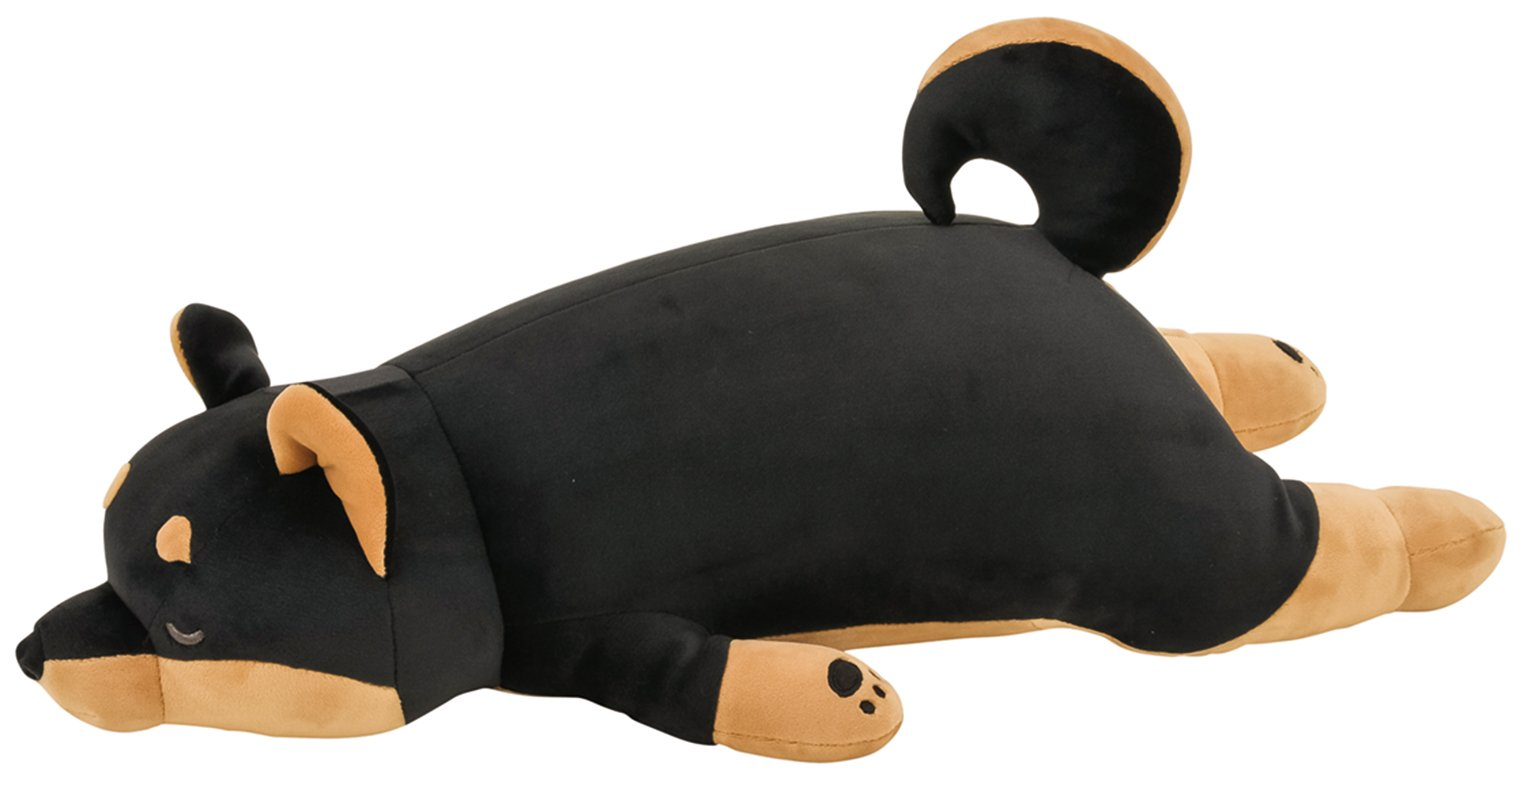 LivHeart Premium Nemu Nemu Sleepy head Animals Body Pillow Black Plush Dog KuroShiba 'Kotetsu' size M (22''x9.5''x5.5'') Japan import 48769-73 Huggable Super Soft Stuffed Toy